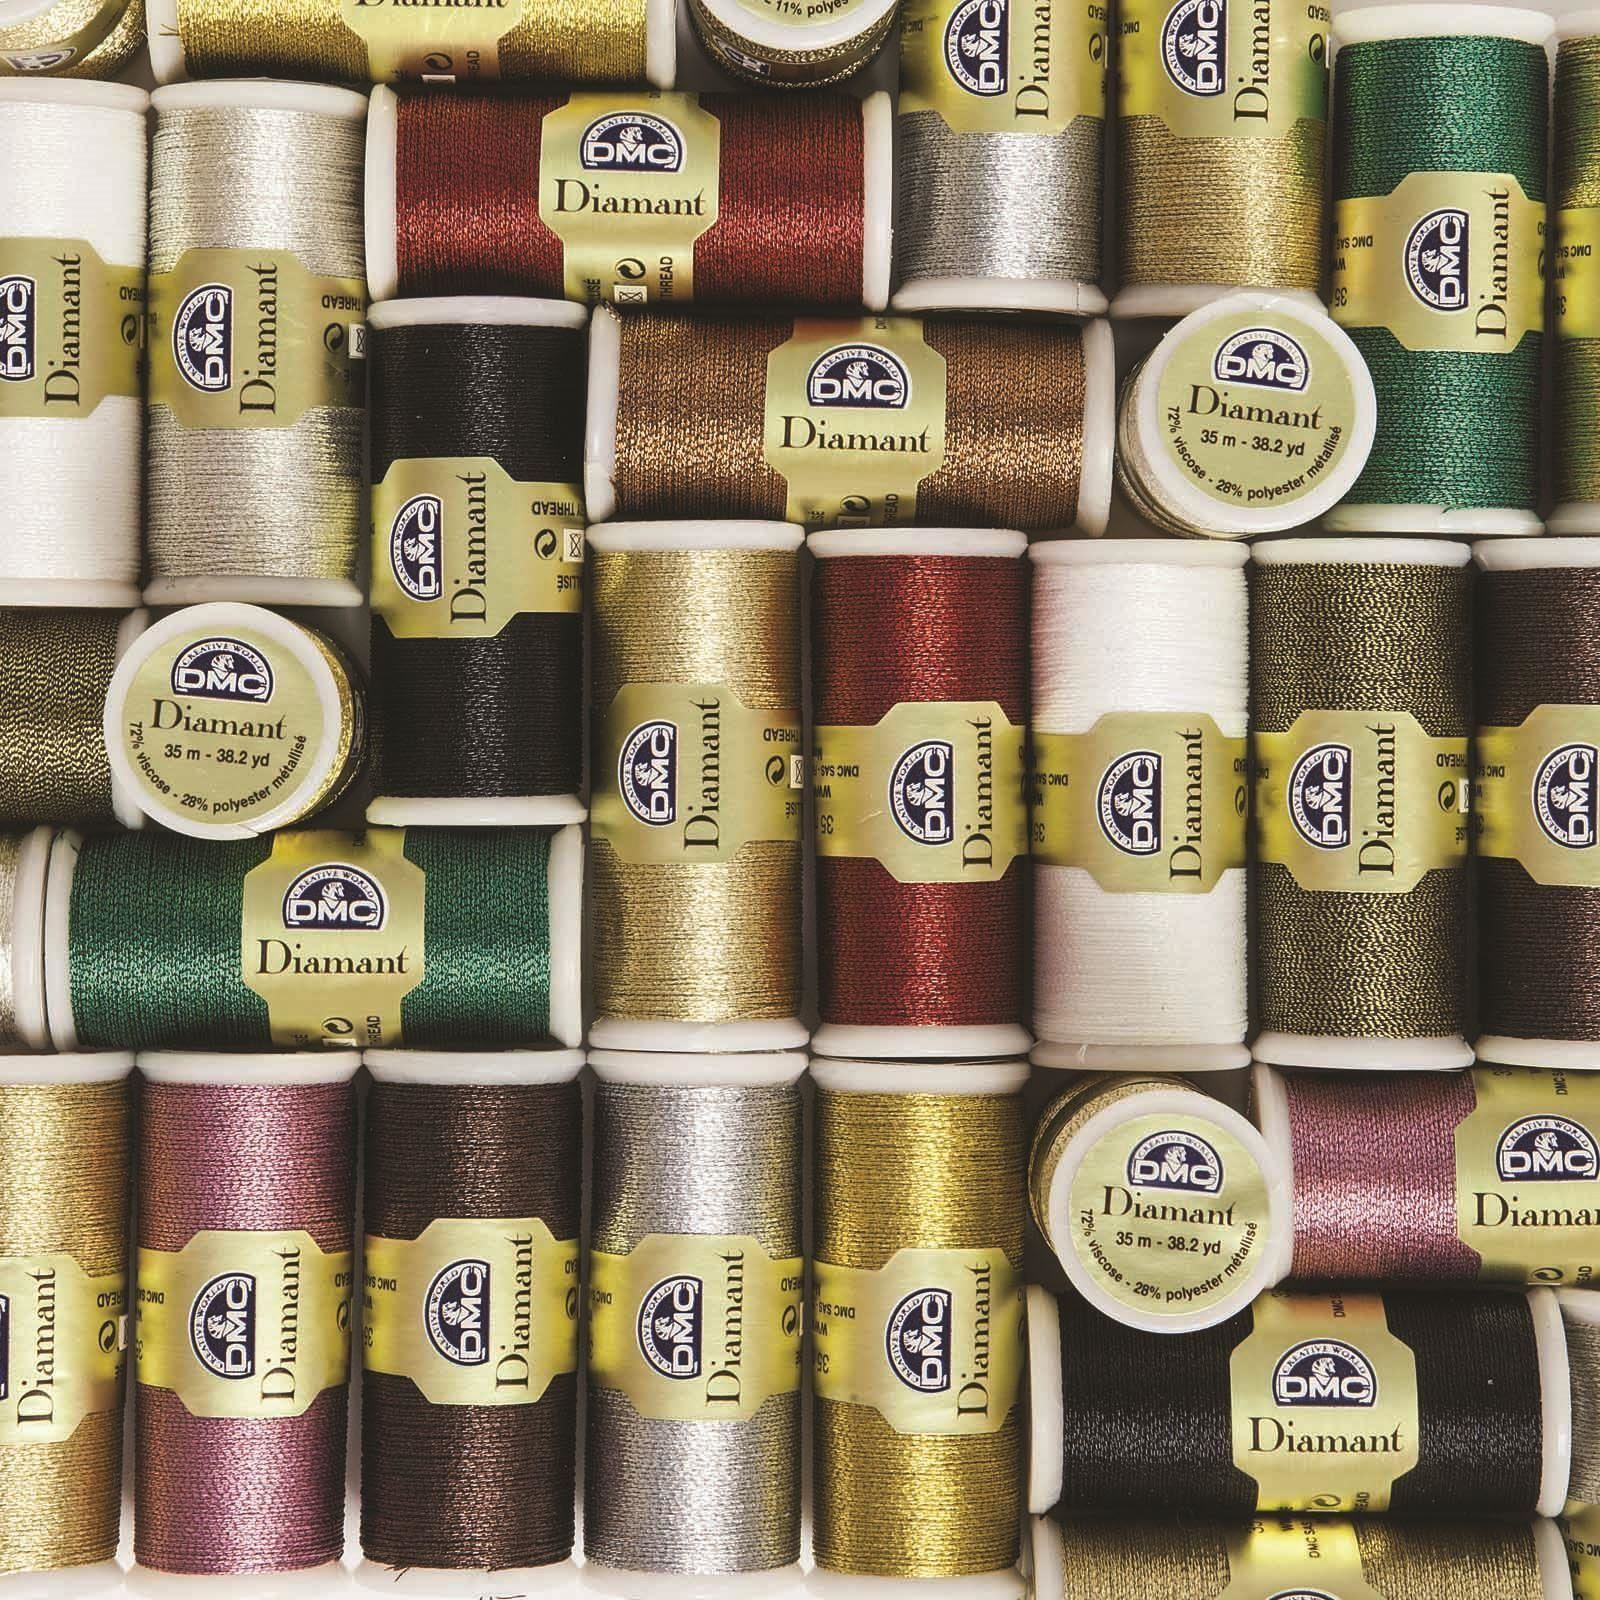 DMC-Diamant-Metallic-Embroidery-Thread-35m-Spool-Cross-Stitch thumbnail 20